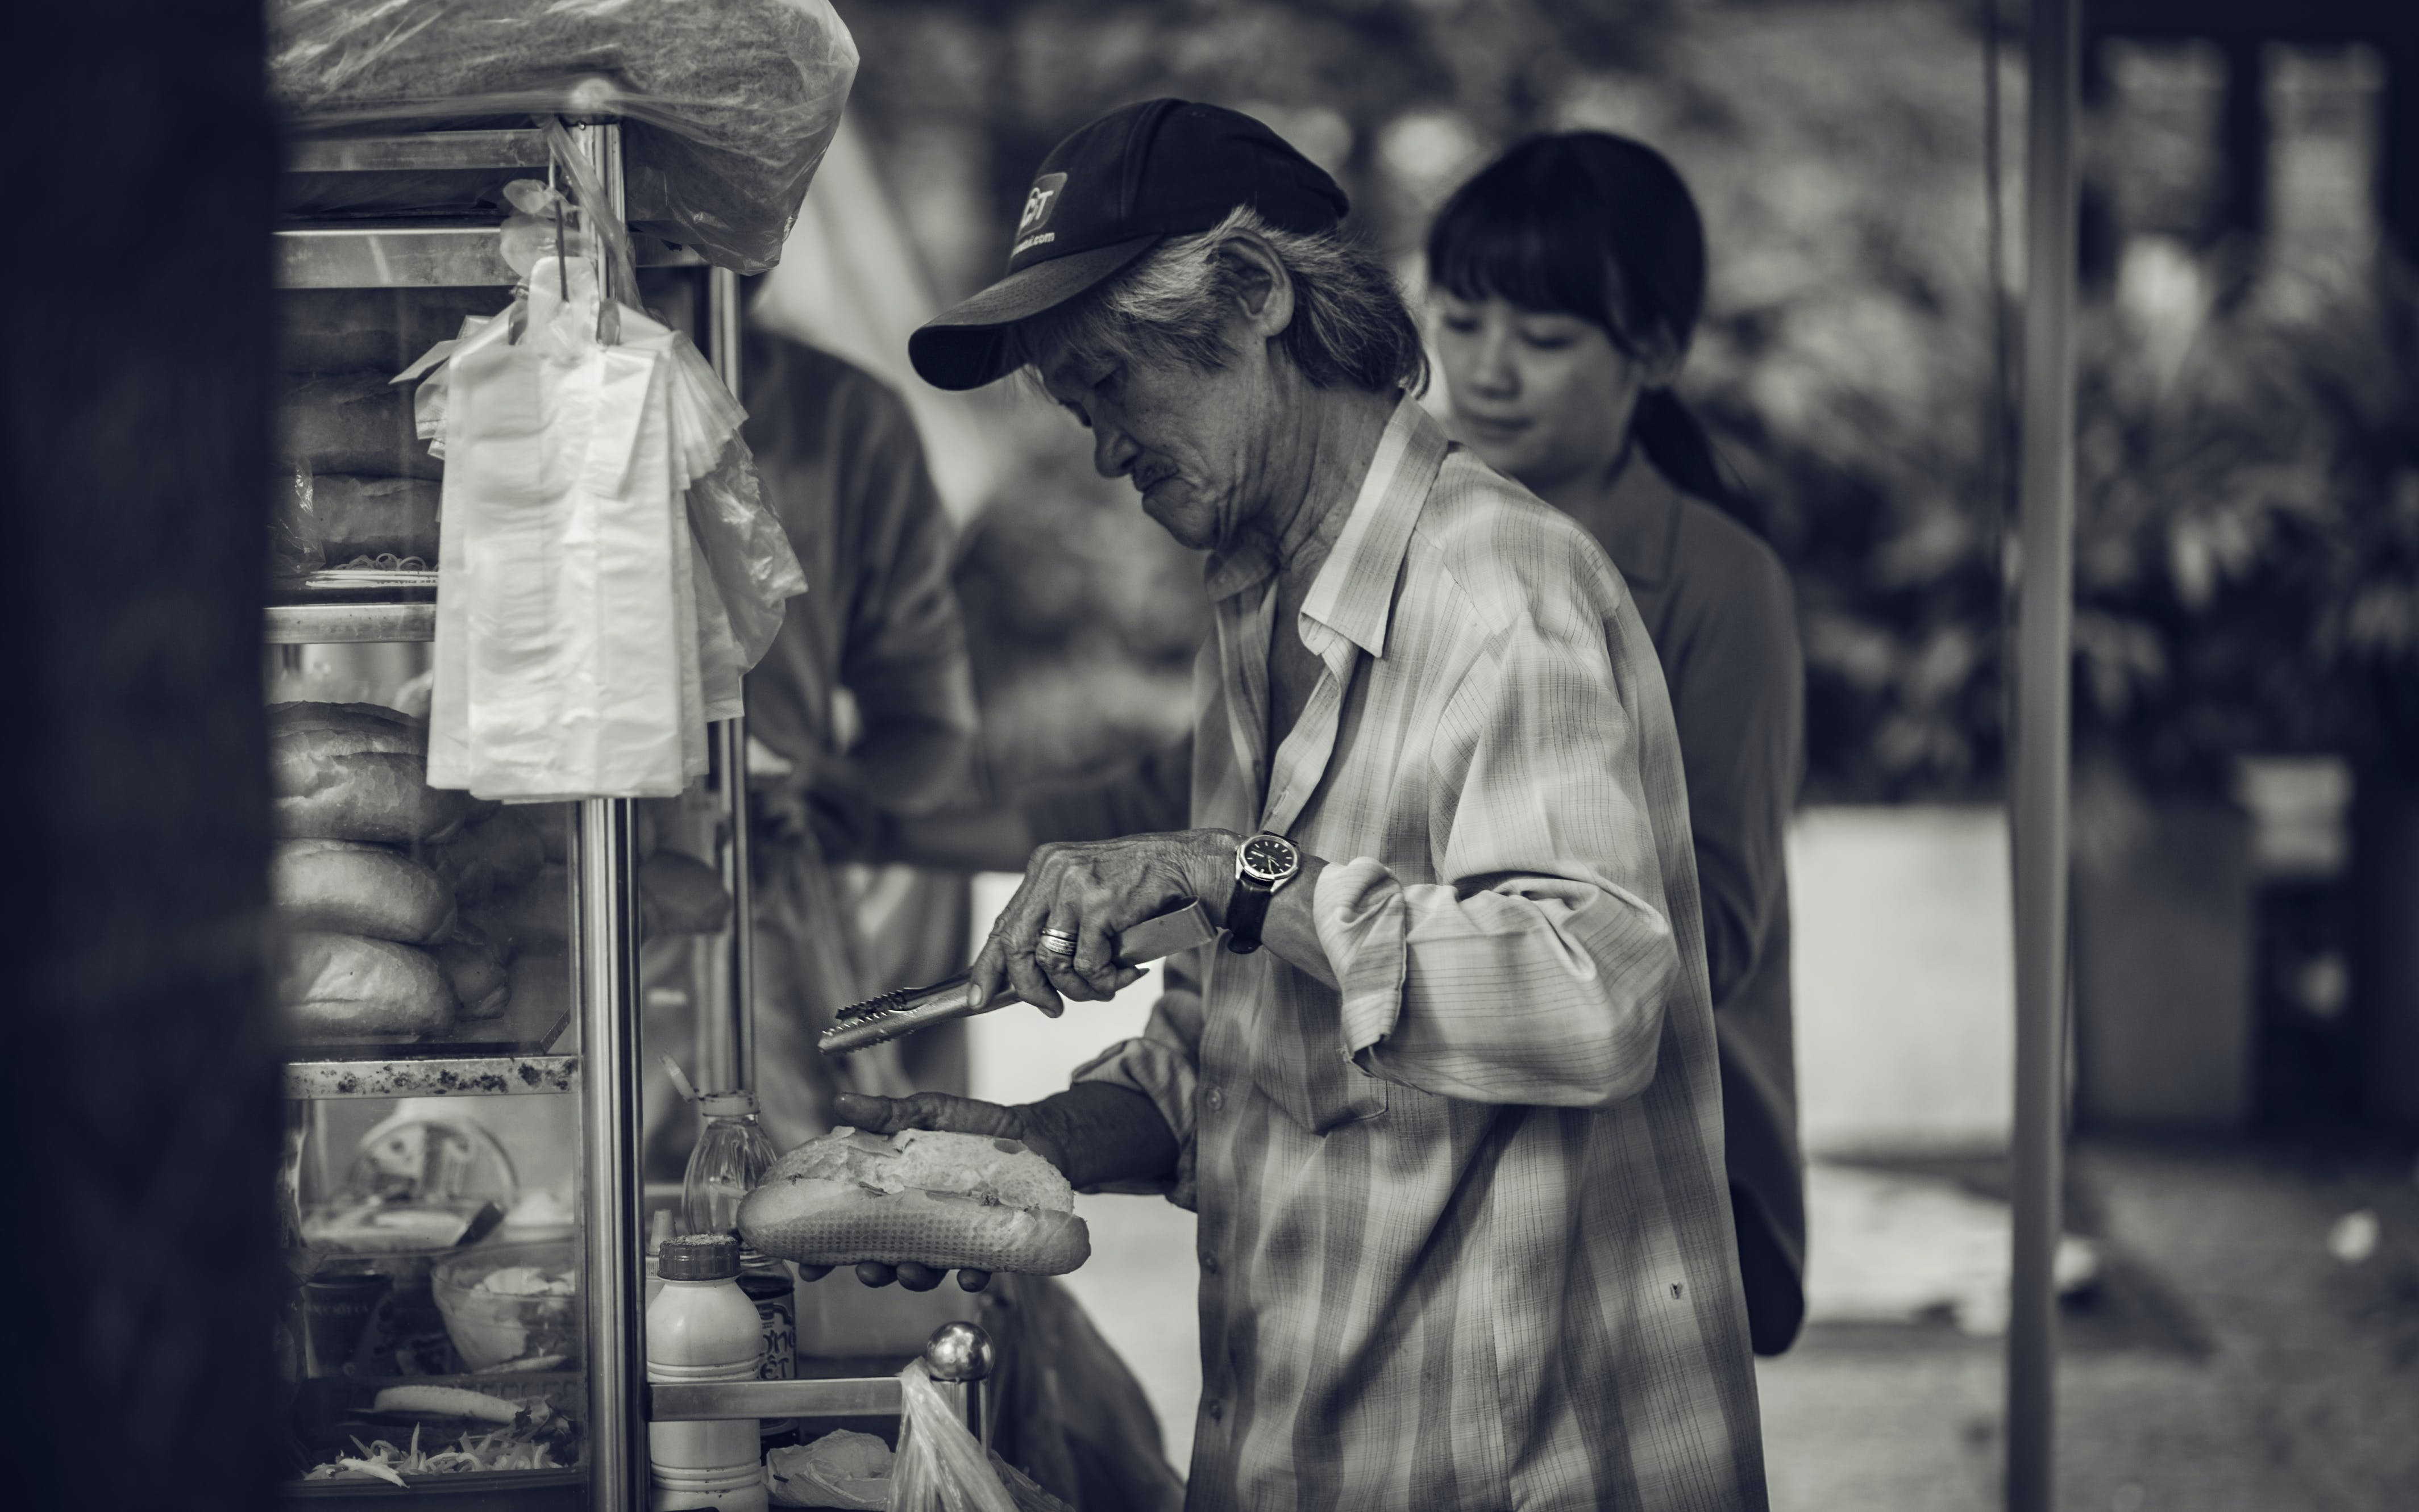 Man in Cap Holding a Pastry and Tong